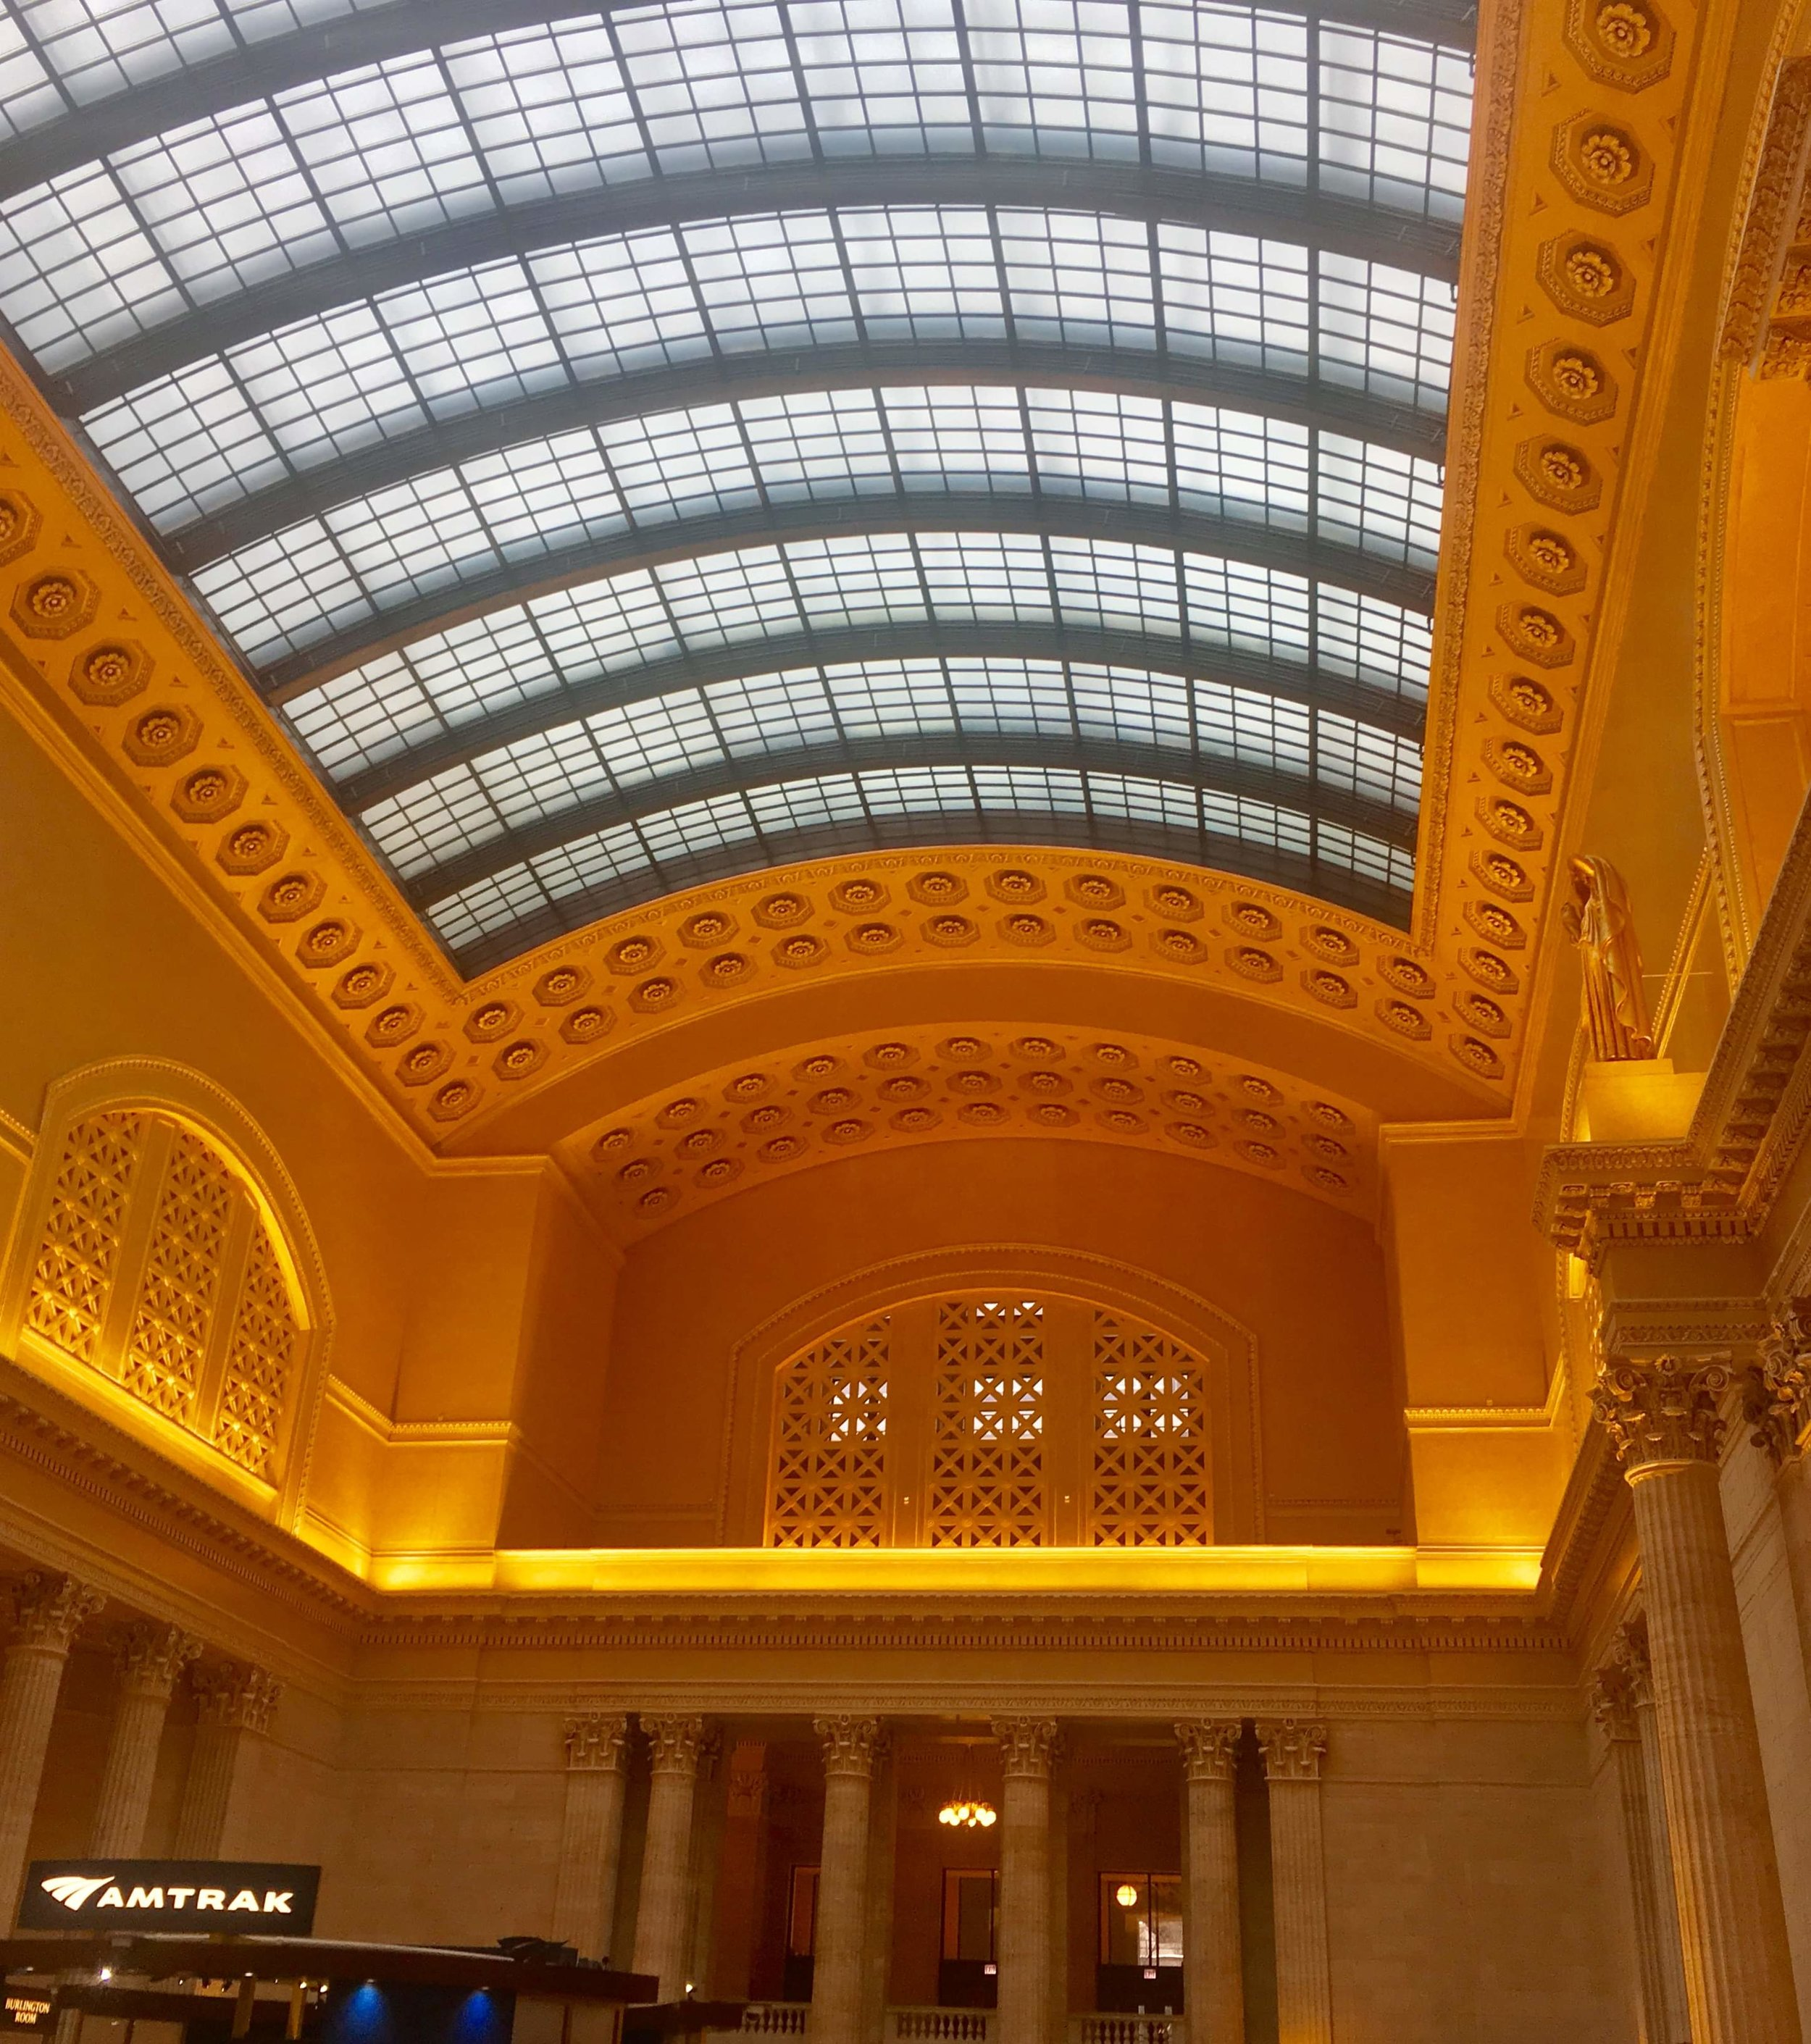 Arriving to the regal splendor of Chicago's Union Station.